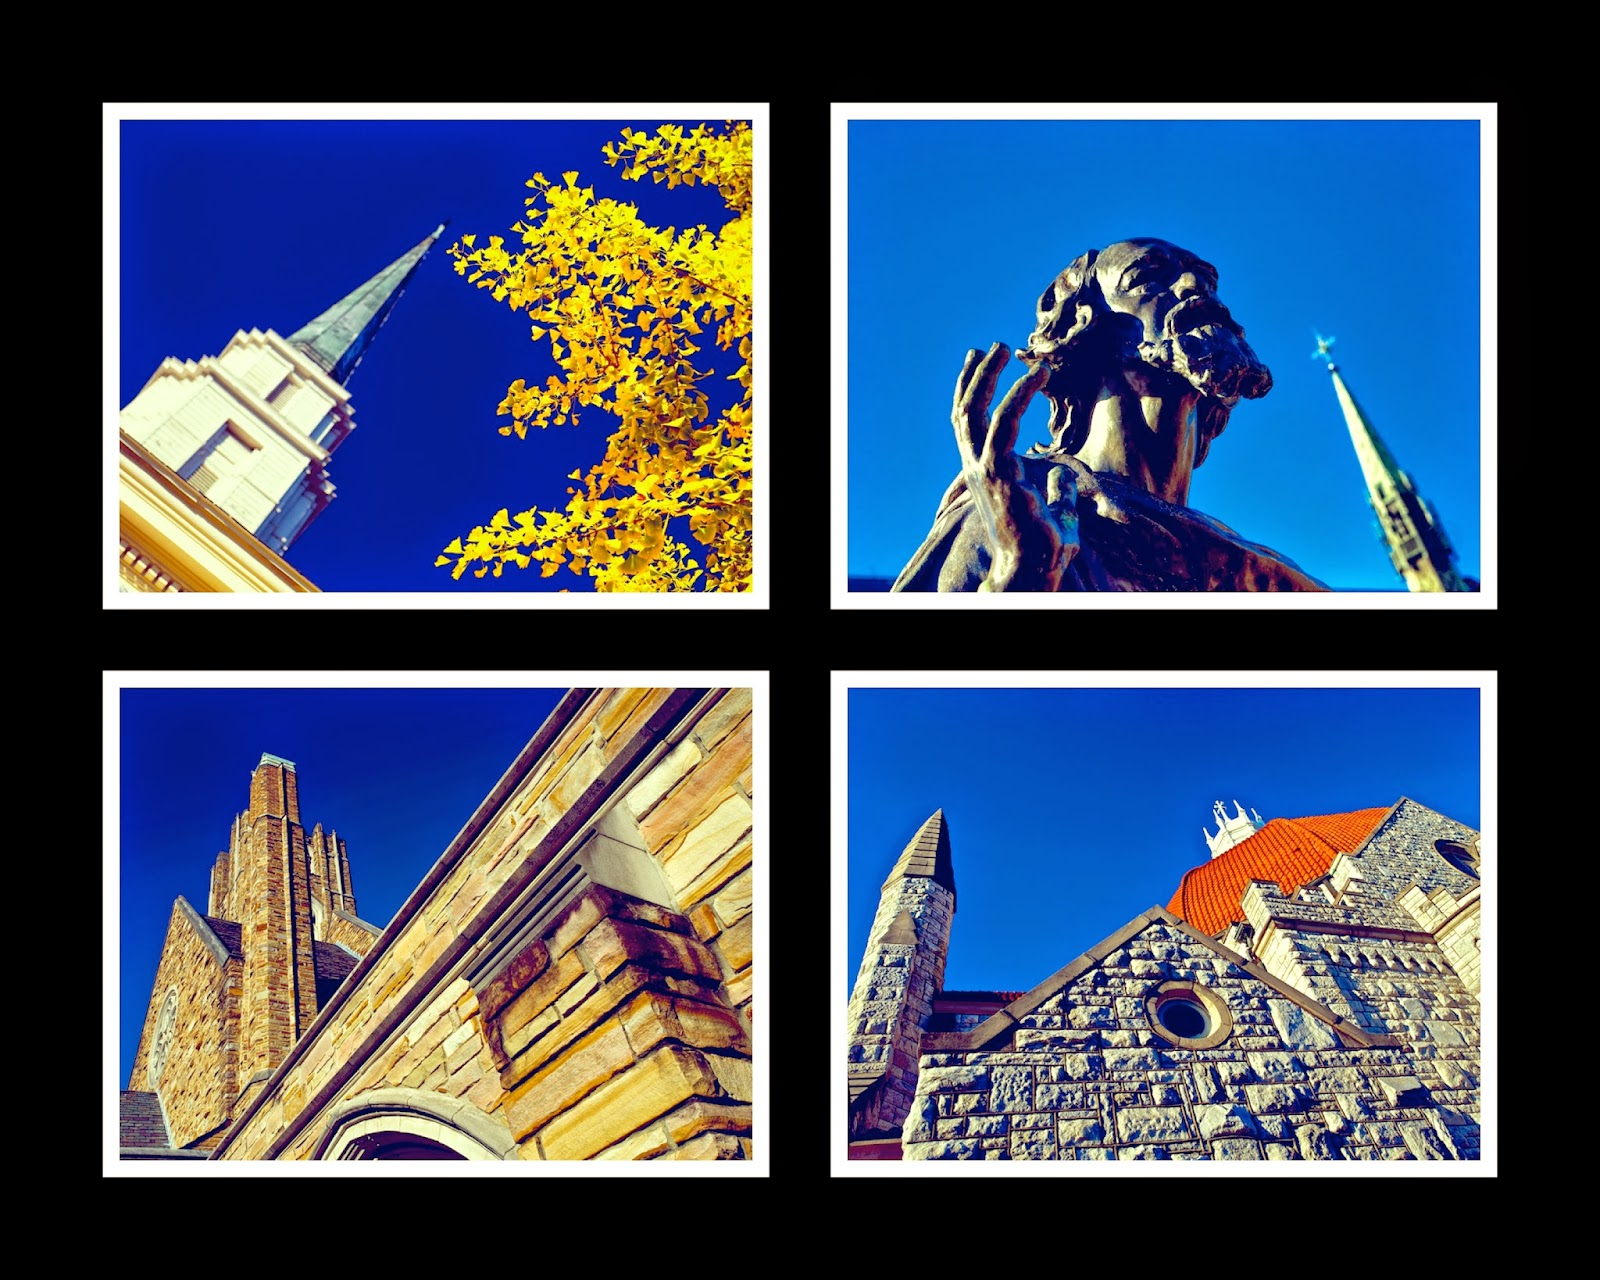 Colorful Steeples